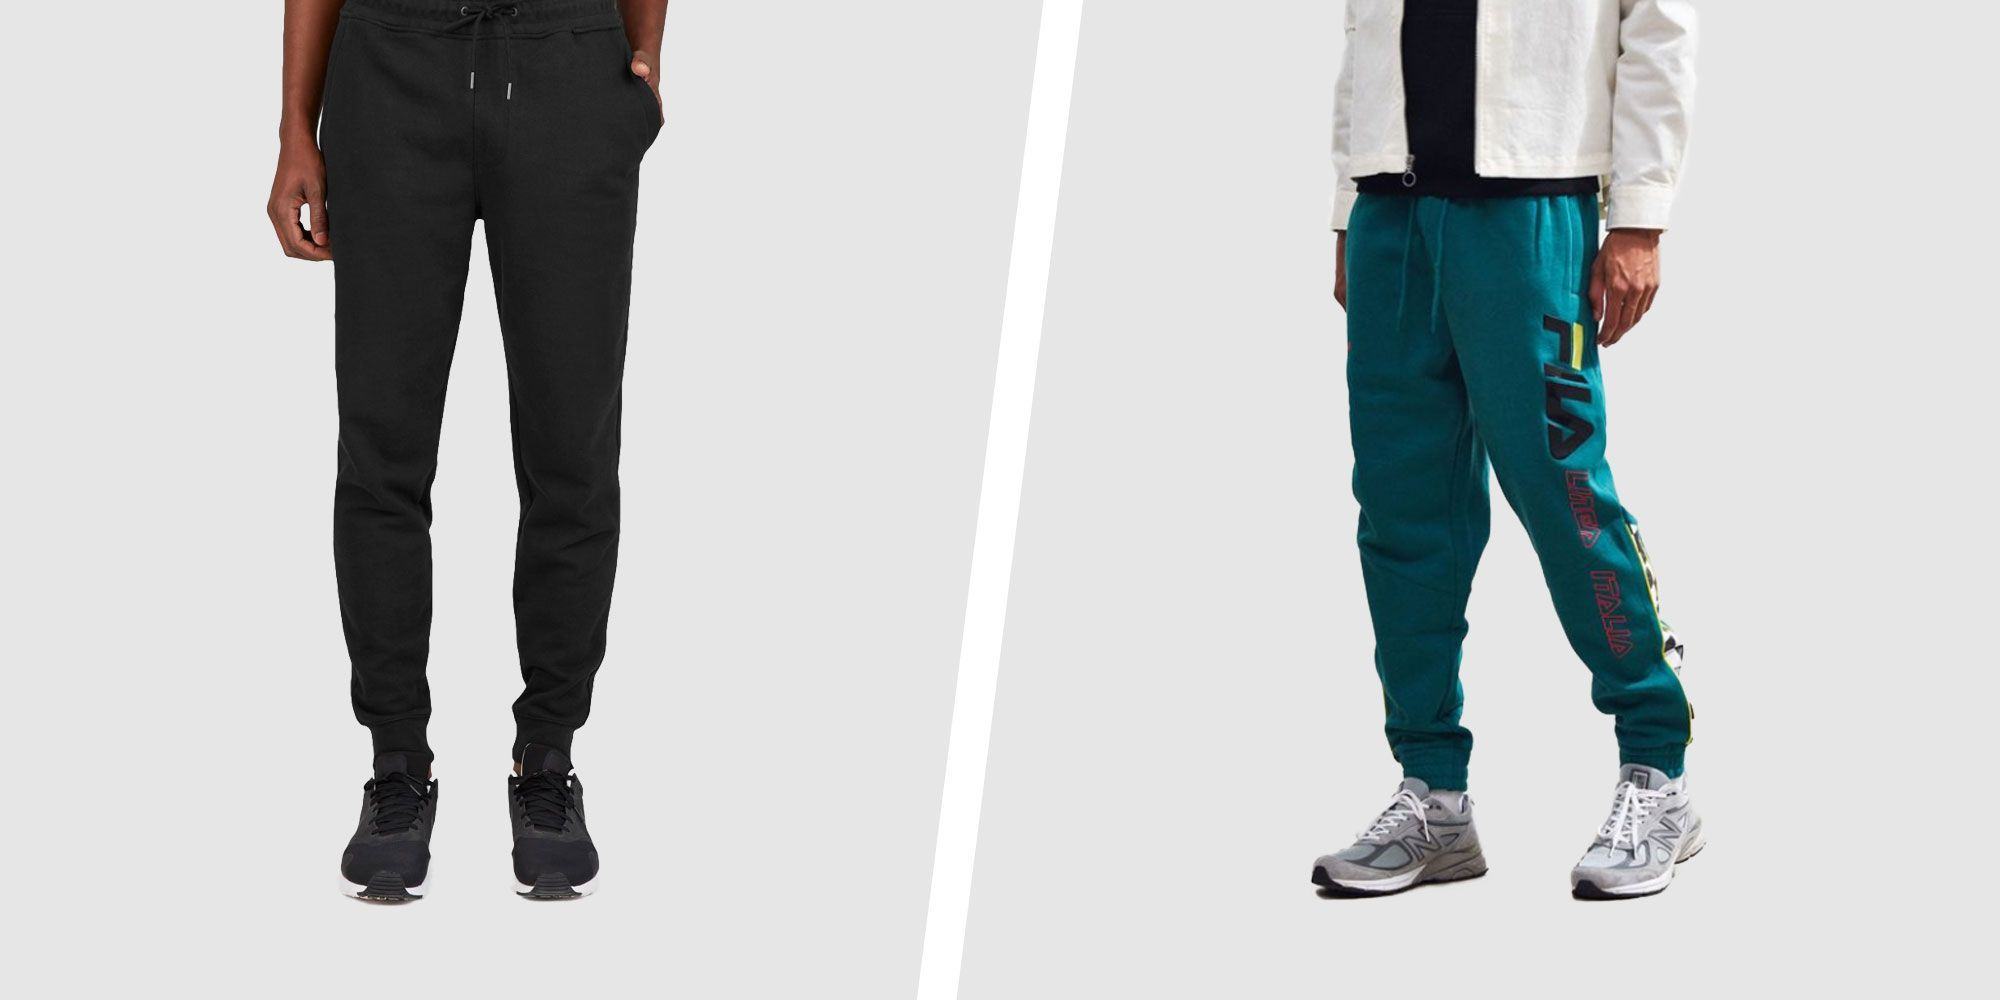 62e6c24789e55f The 12 Men s Best Sweatpants That Won t Make You Look Like a Slob